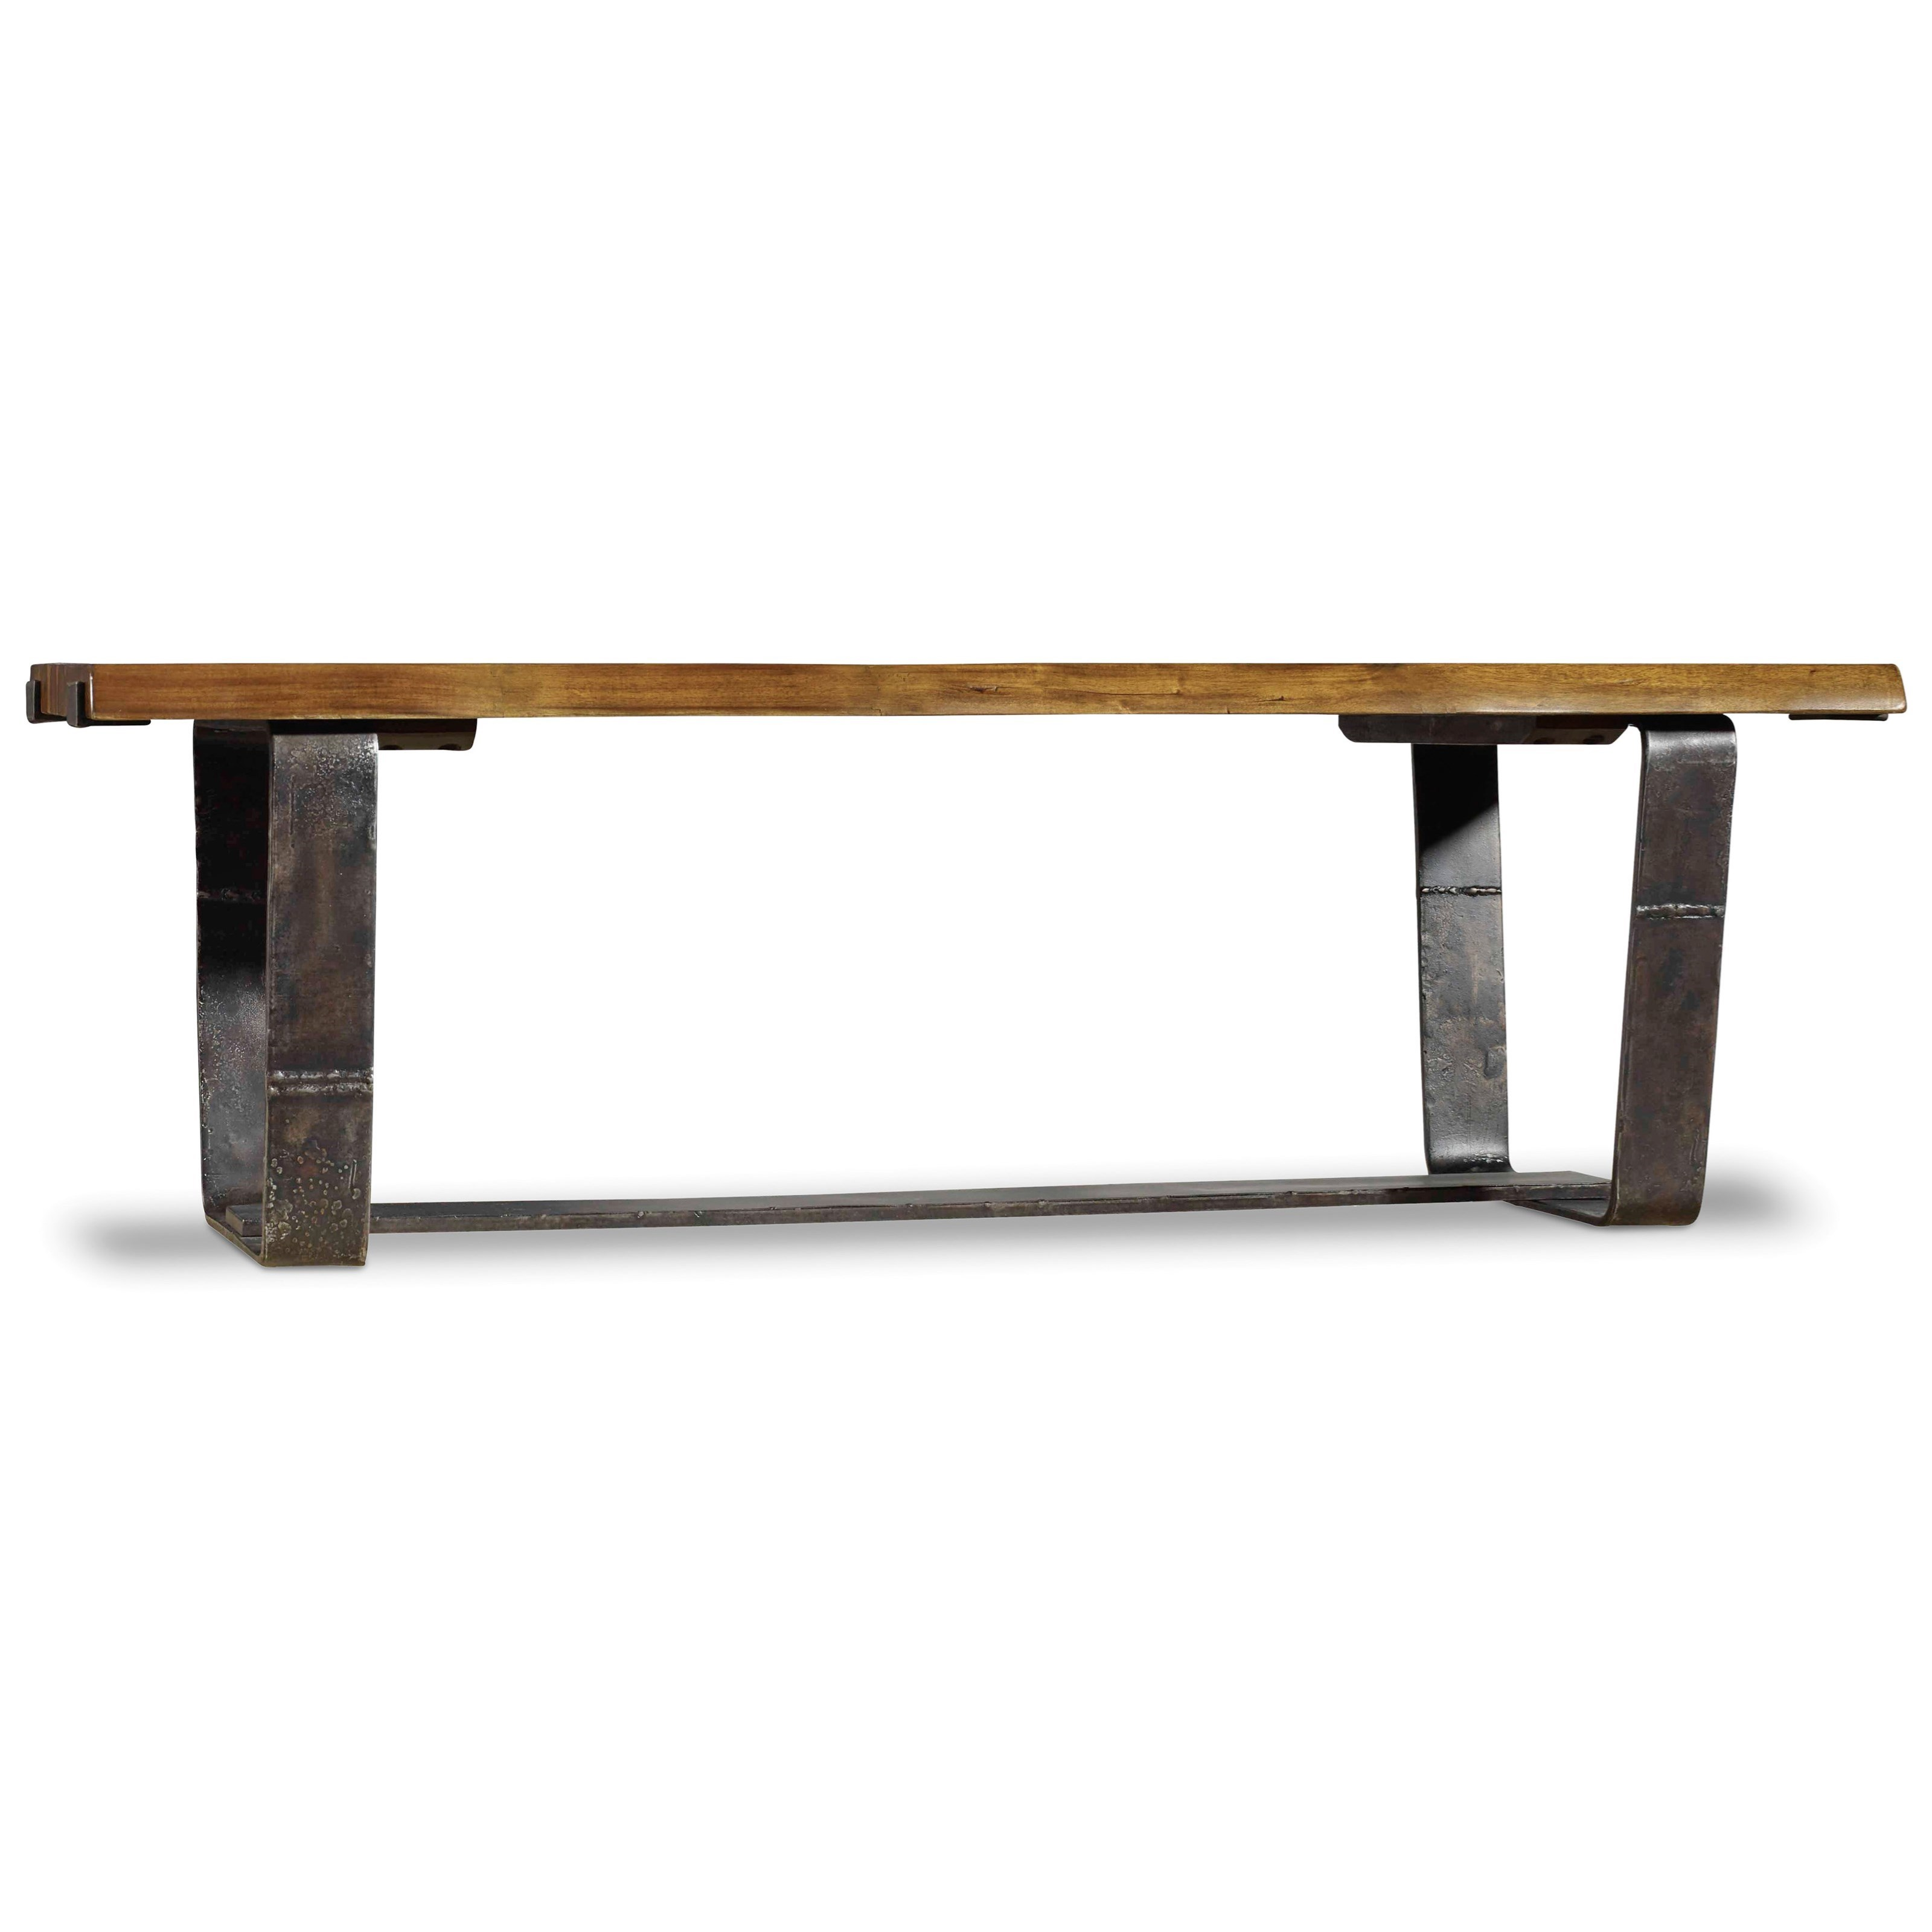 Hooker Furniture Live Edge Rustic Cocktail Table Reeds Furniture Cocktail Coffee Tables